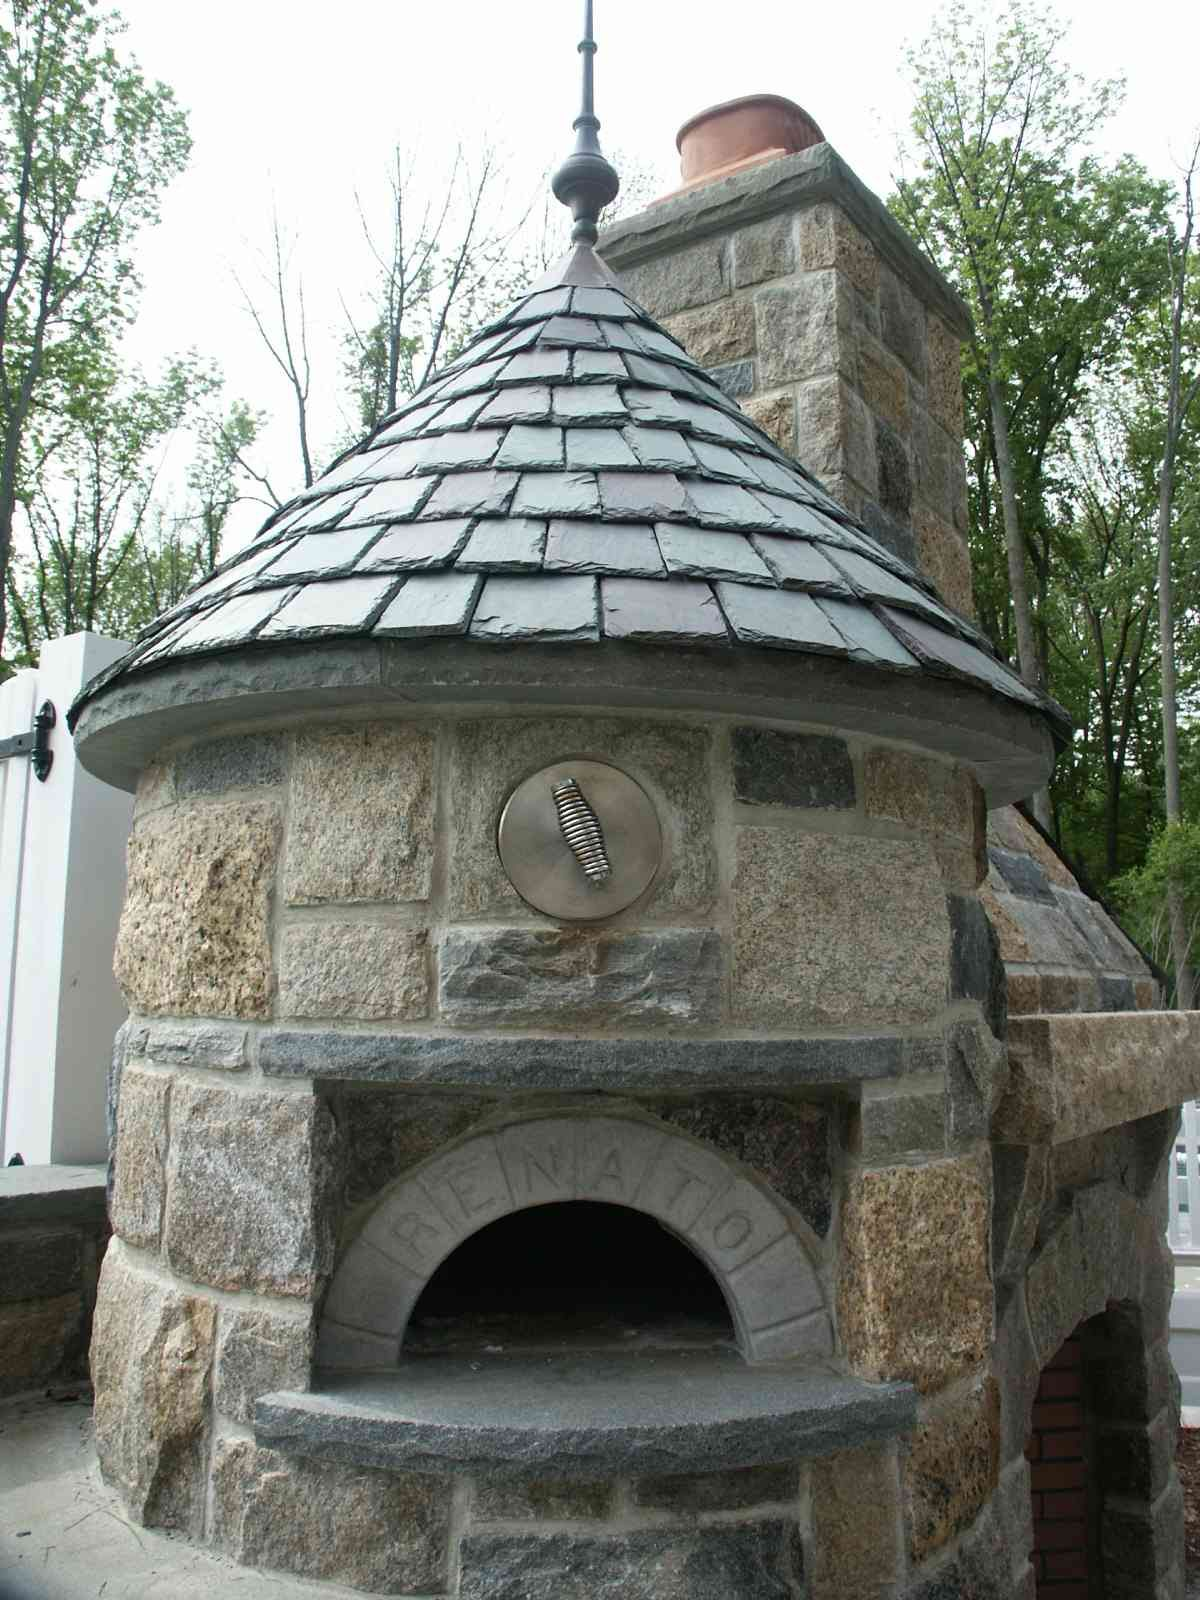 wood gas infrared brick ovens options for indoors or outdoors